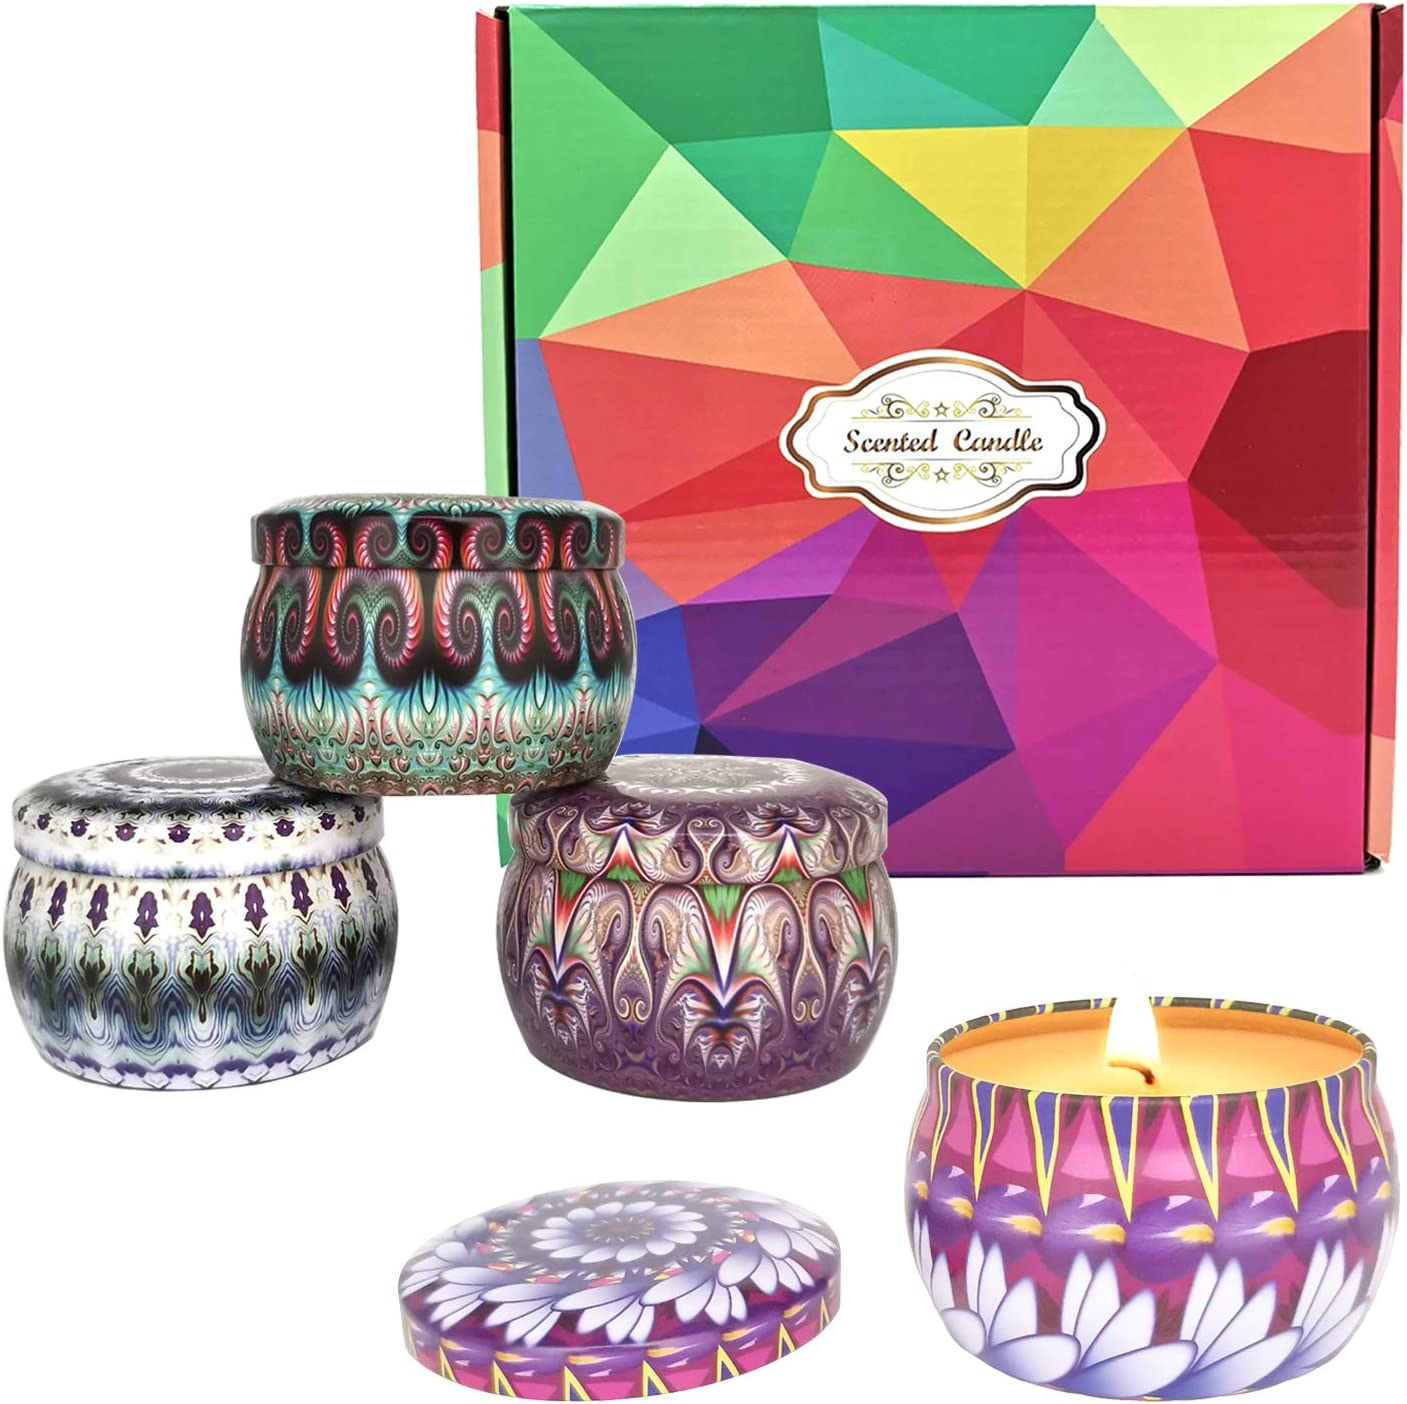 Scented Candles Gift Set Large discharge sale for Women Cand 4.4 oz Aromatherapy Inexpensive 4 x